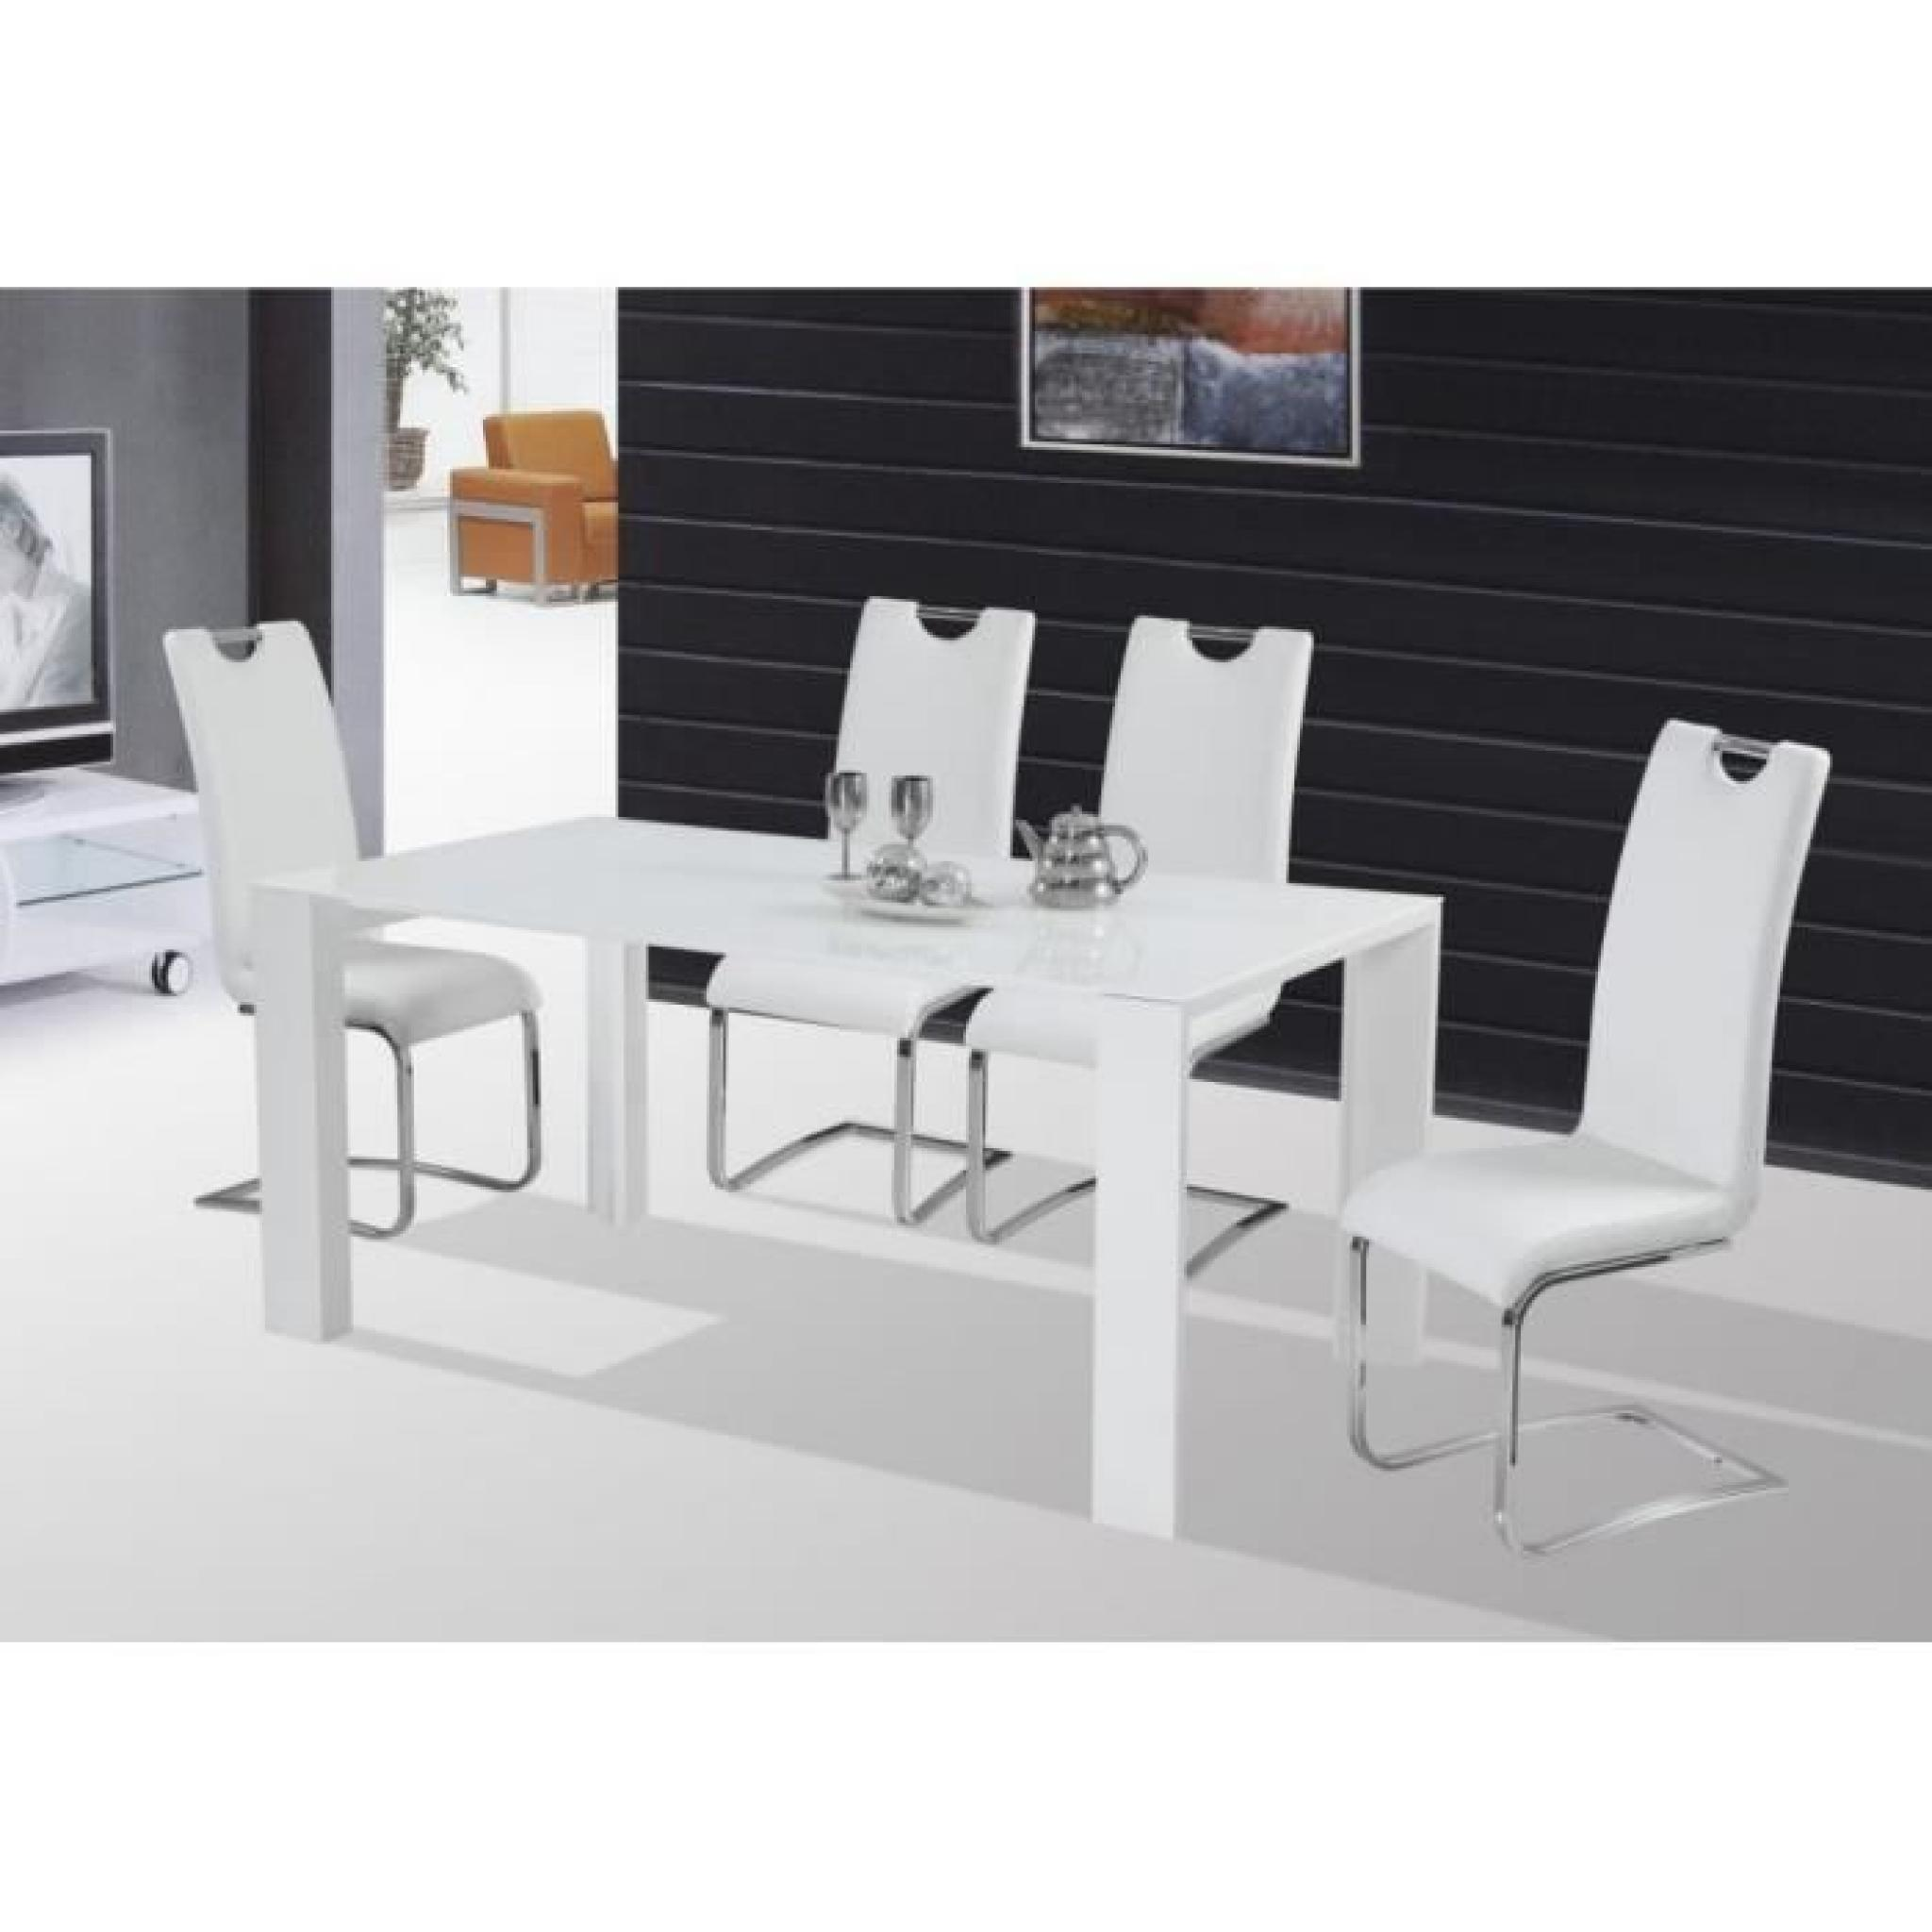 Table de salle manger jonas blanc laqu haute brillance for Table a manger laque blanc pas cher